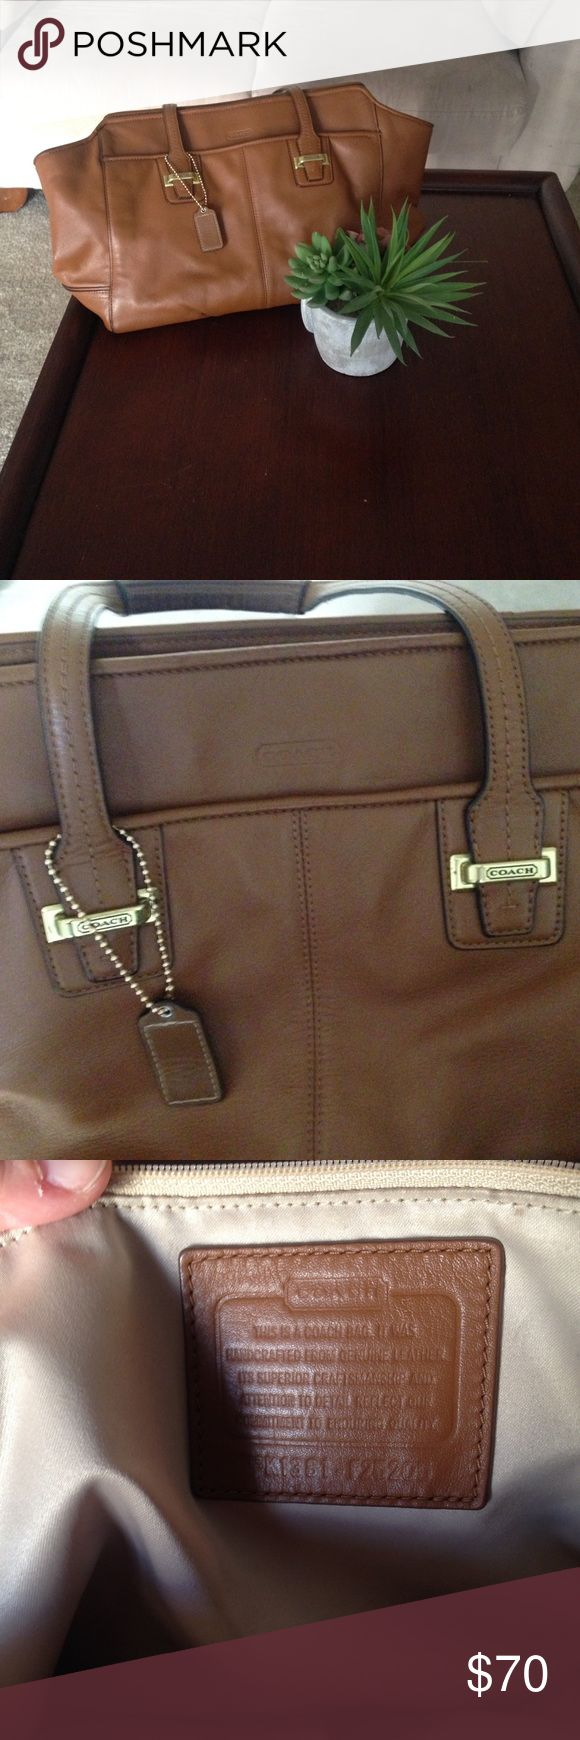 Coach tote bag Genuine leather! Perfect tote for everyday use! Handles have some wear but otherwise perfect condition! Coach Bags Totes